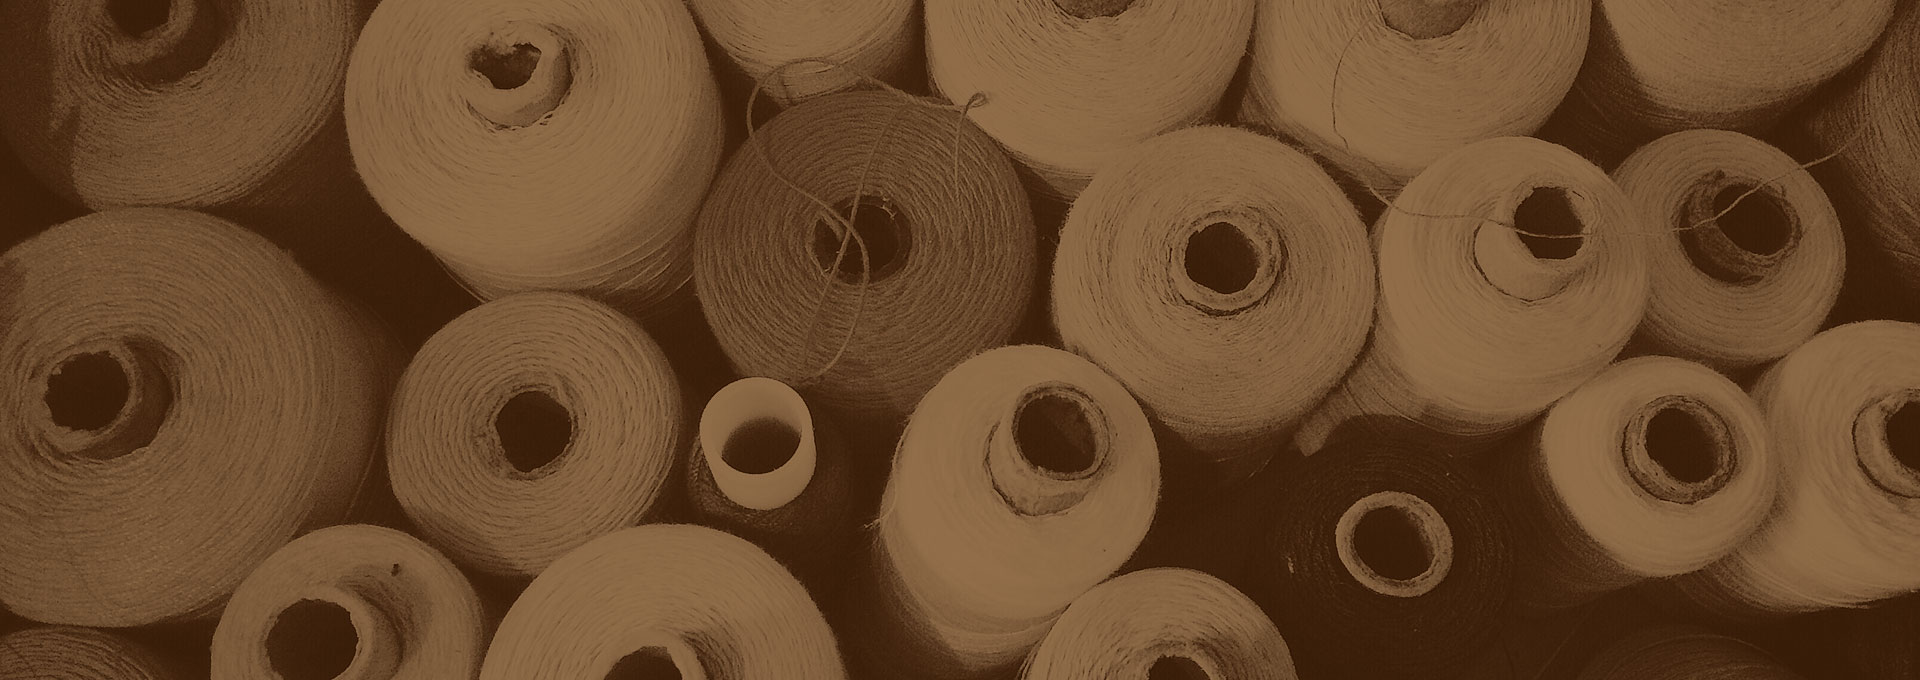 Sustainable Fashion: Identifying Fast Fashion Flaws and Extending the Life Cycle of Clothing